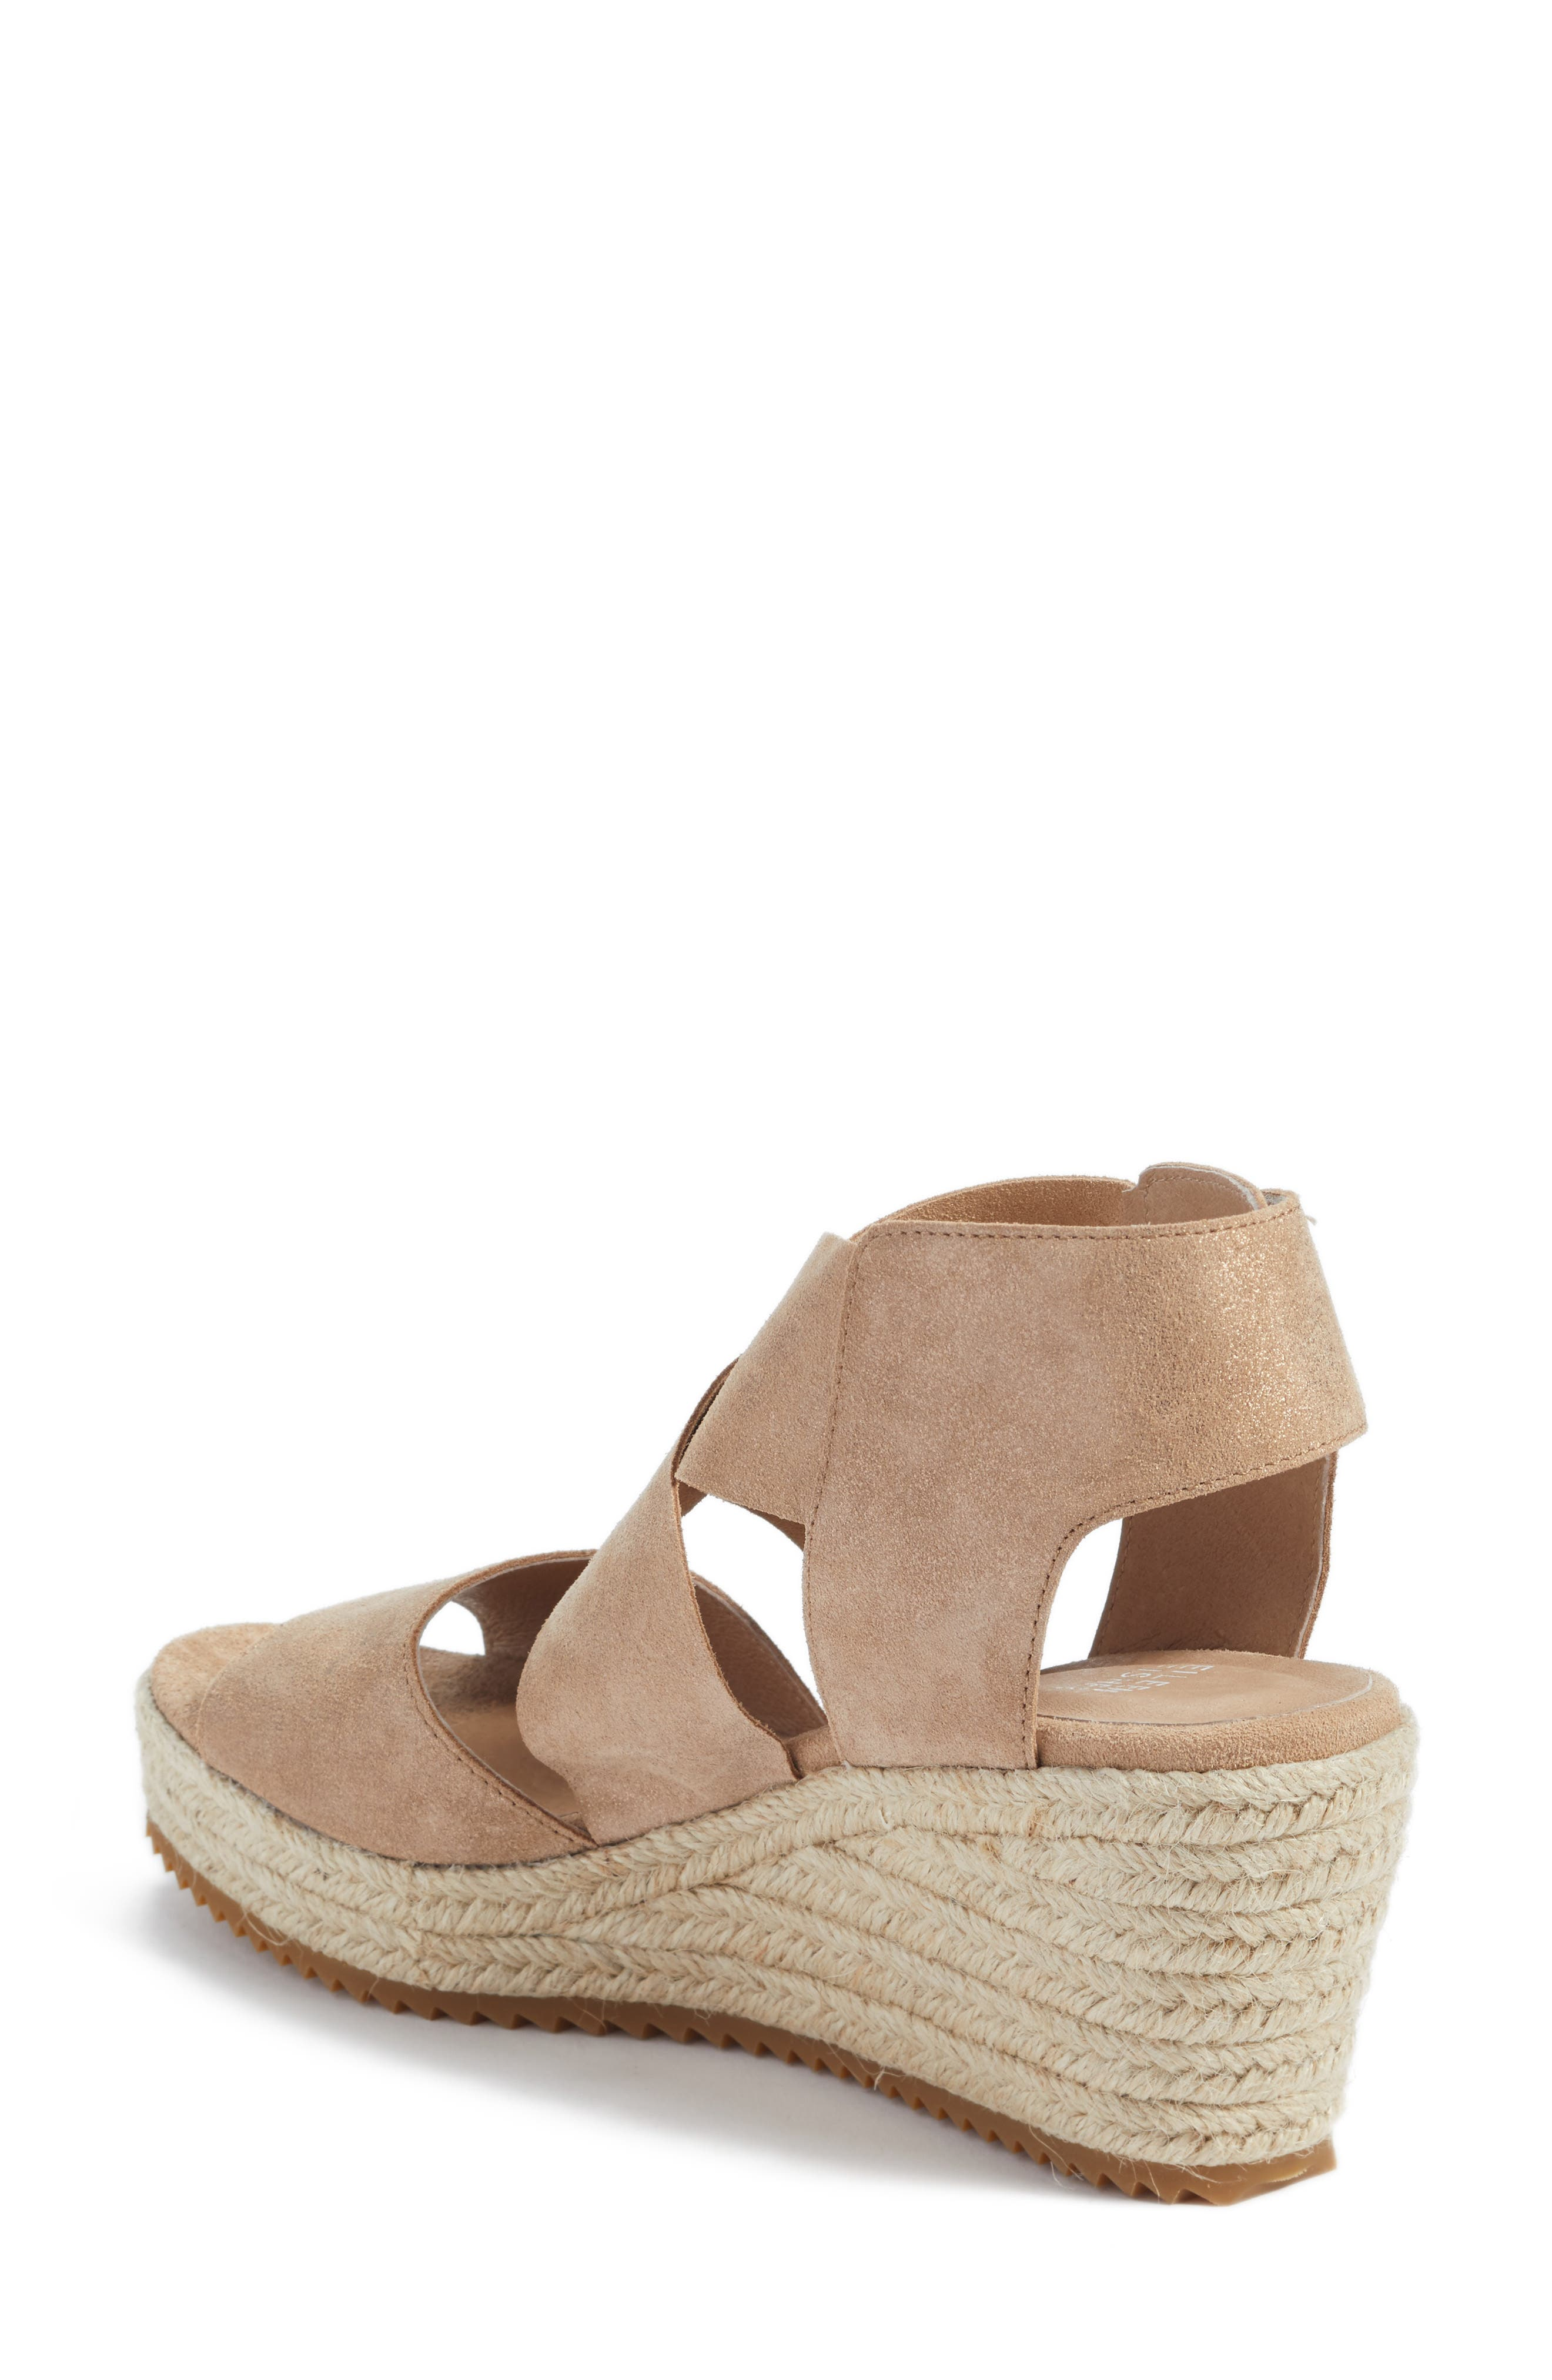 'Willow' Espadrille Wedge Sandal,                             Alternate thumbnail 2, color,                             LIGHT GOLD STARRY LEATHER